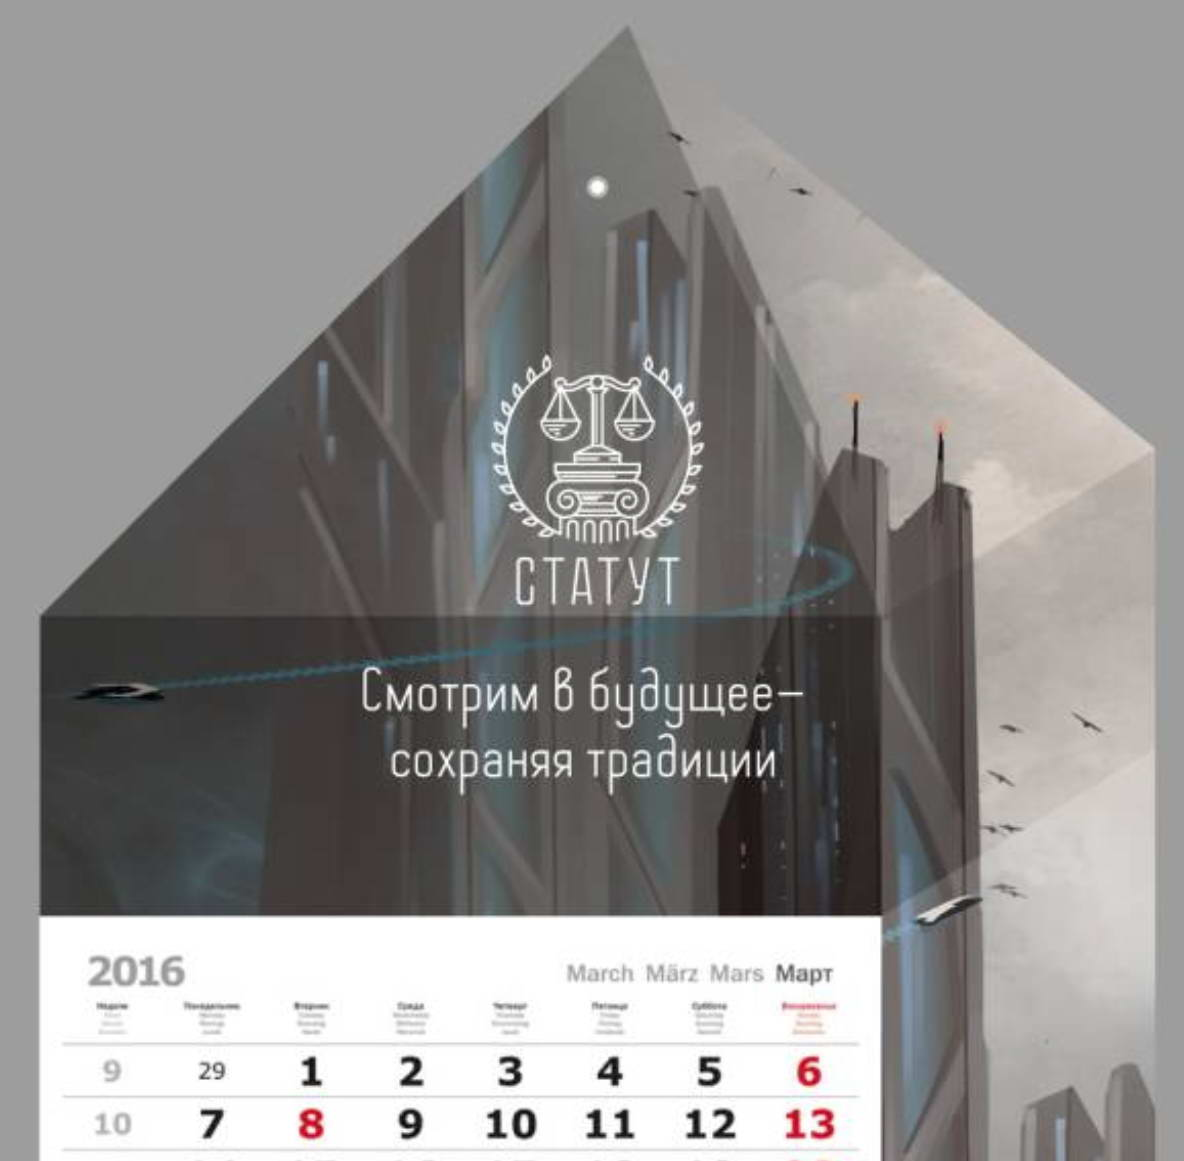 Quarterly premium calendar for the Statute of the group companies